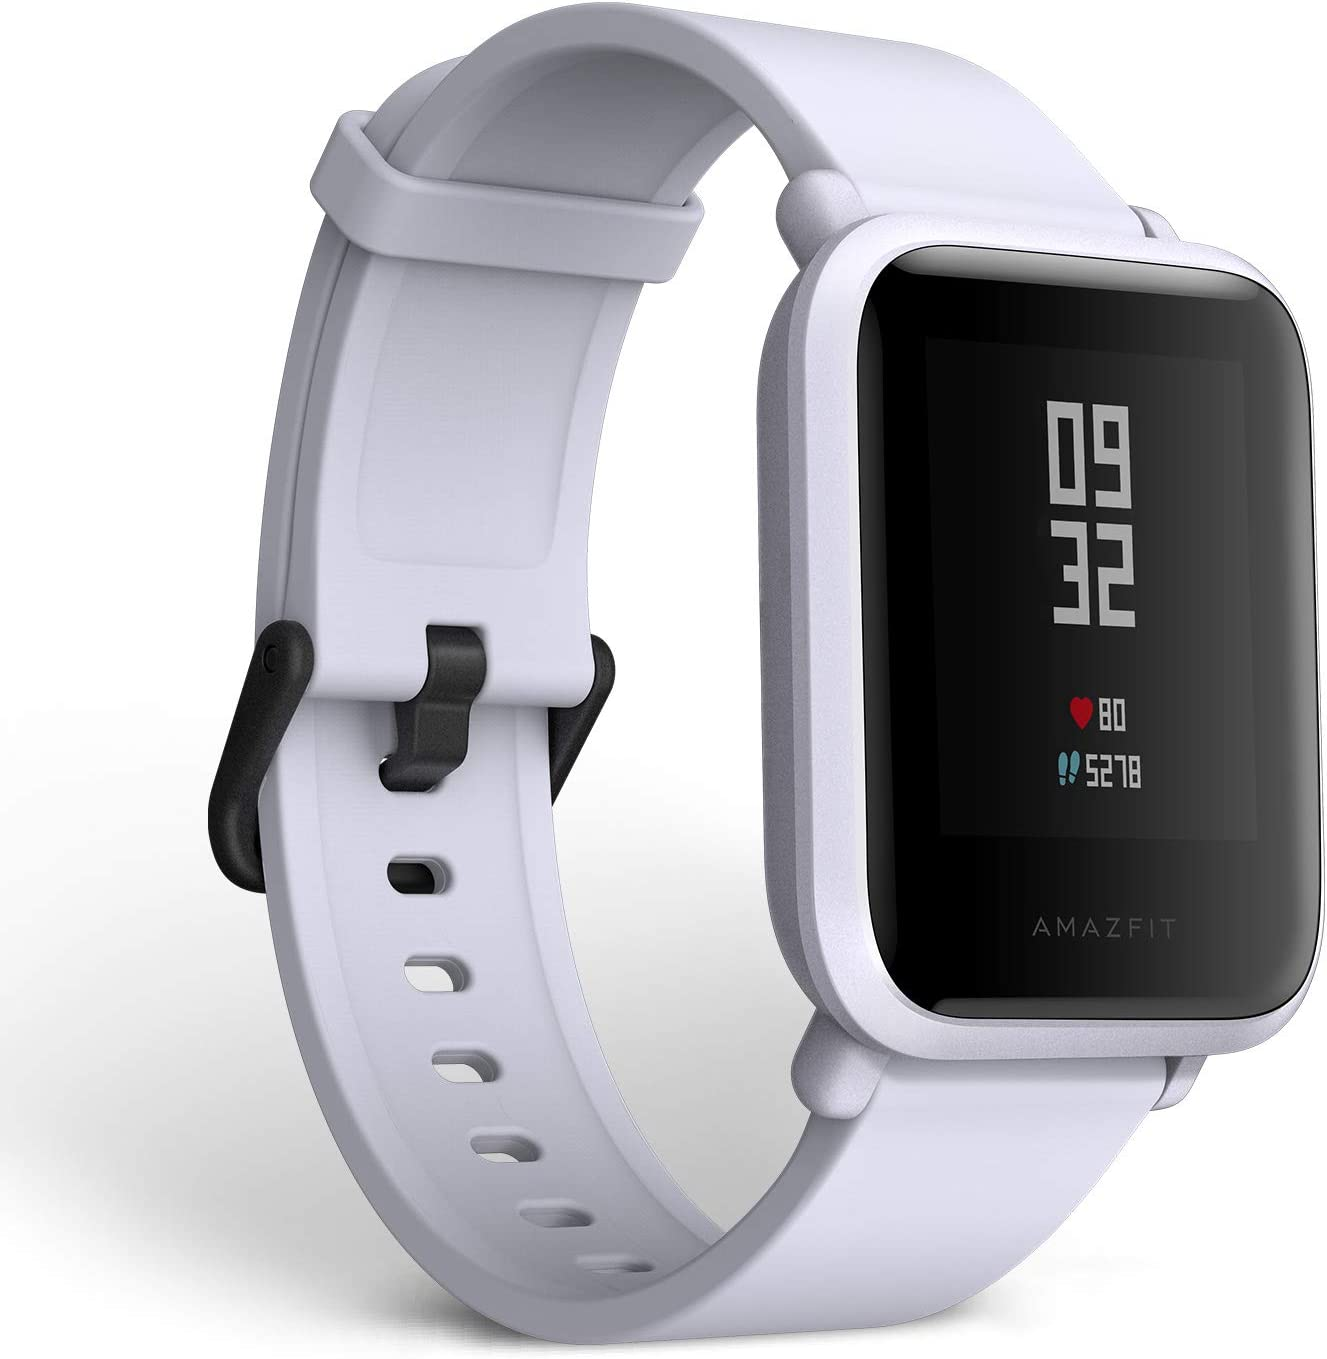 Amazfit BIP smartwatch by Huami with all-day heart rate and activity tracking, sleep monitoring, GPS, 30-day battery life, Bluetooth (White Cloud)